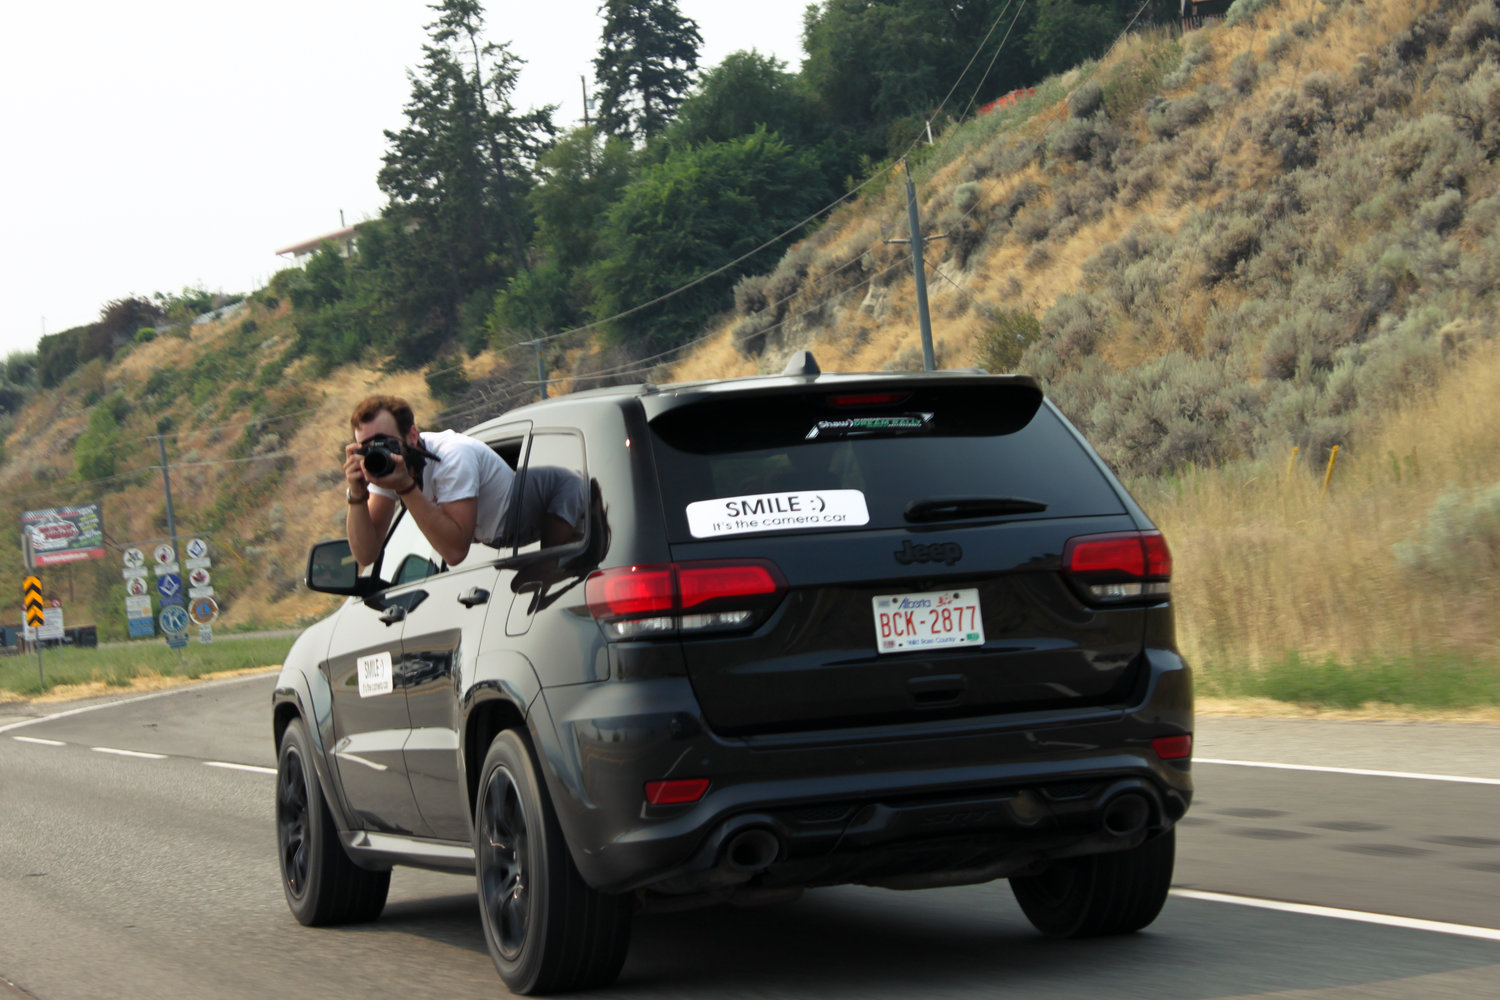 I was paired up with a guy n' gal for the majority of the cruise in an SRT8 Jeep, labeled as one of the official camera vehicles; which, for a couple of randoms who walked into August only days before the rally to try and snag a front row spot, was an absolute honor.